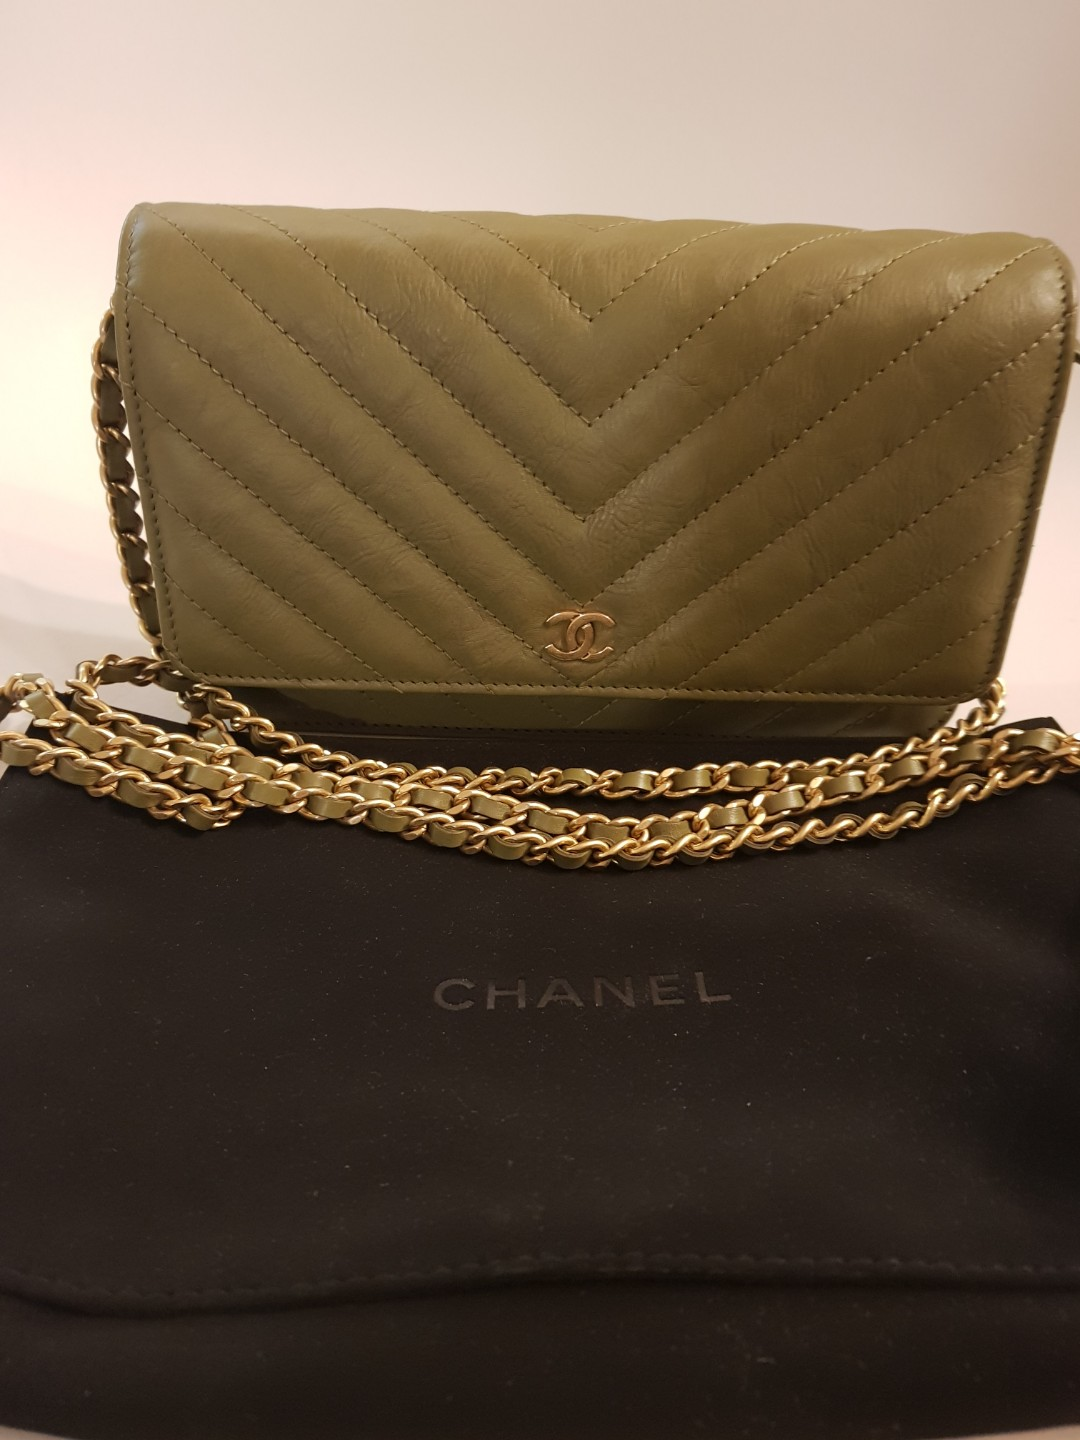 500e4d5d5ce3 CHANEL WOC CHEVRON, Luxury, Bags & Wallets, Handbags on Carousell